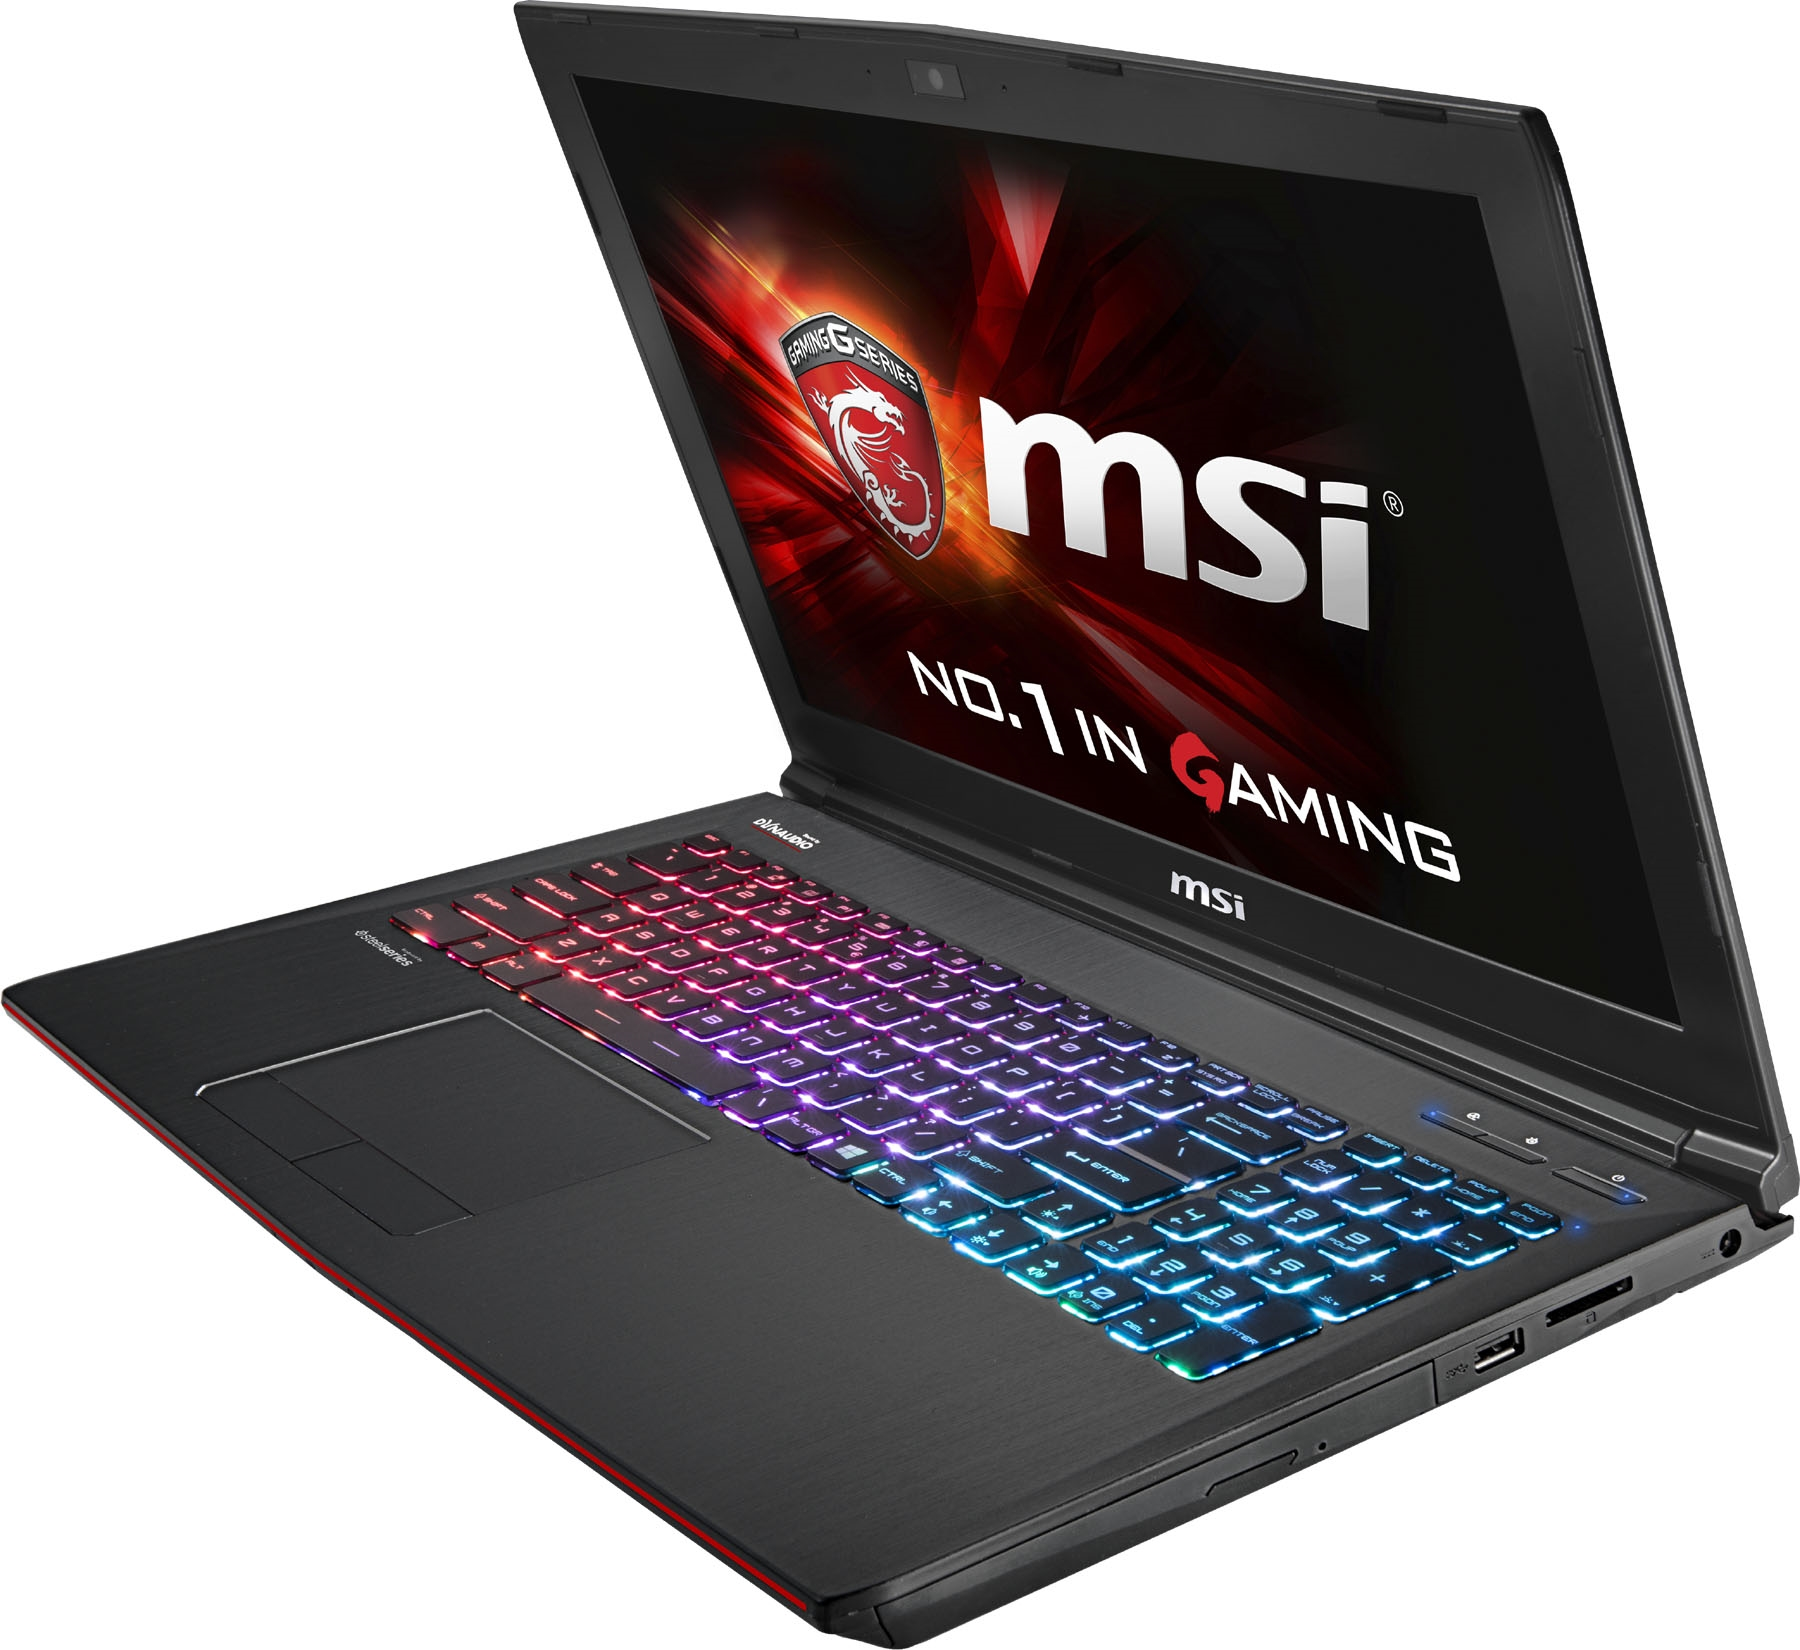 Best Budget Gaming Laptops Under $1000 - Best MSI Gaming Laptops Under $1000 - Full HD Gaming Laptops - Best Laptops for Gaming Under $1000